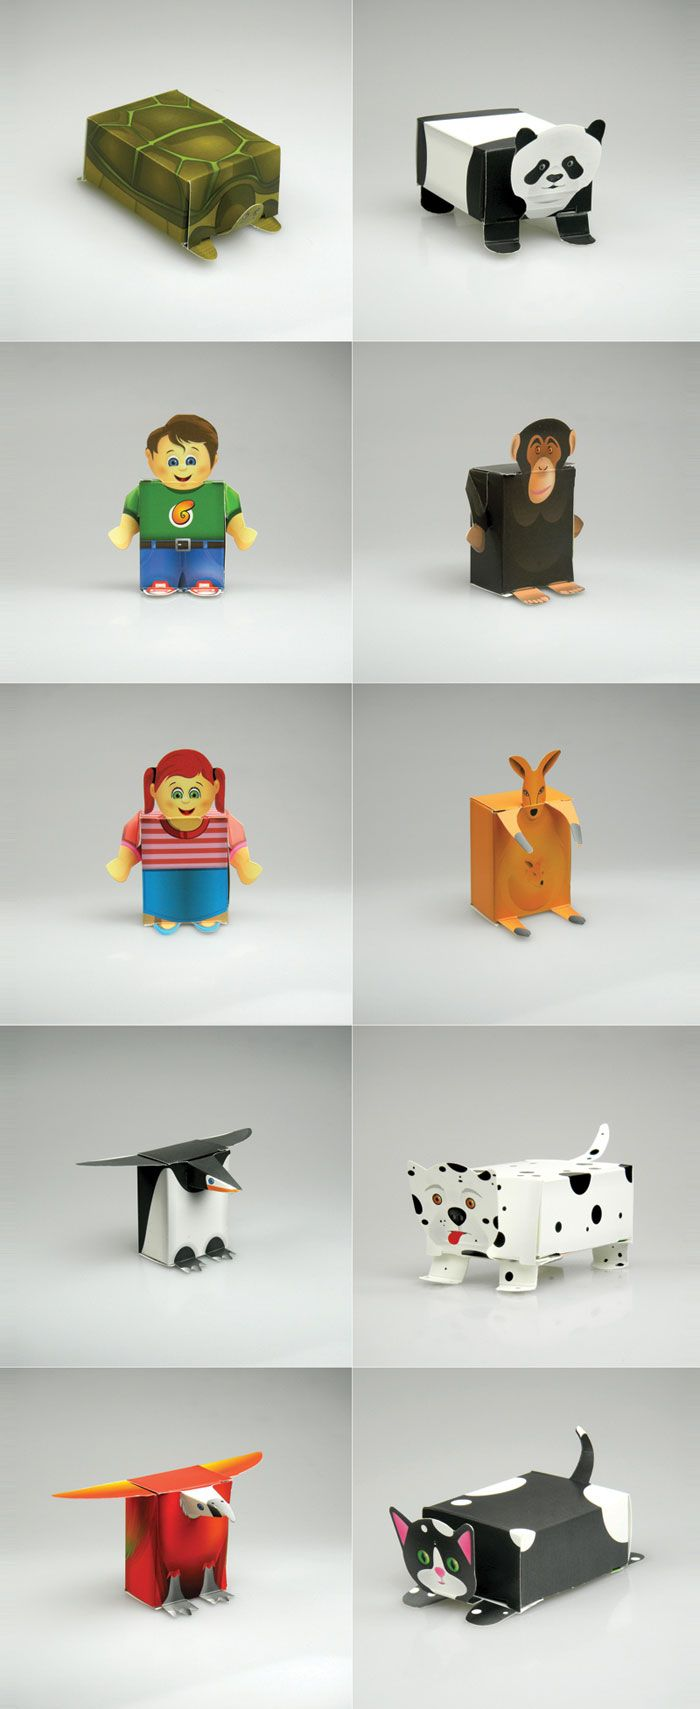 Rasin packages that turn into paper toys with no cutting or gluing required. Genius!